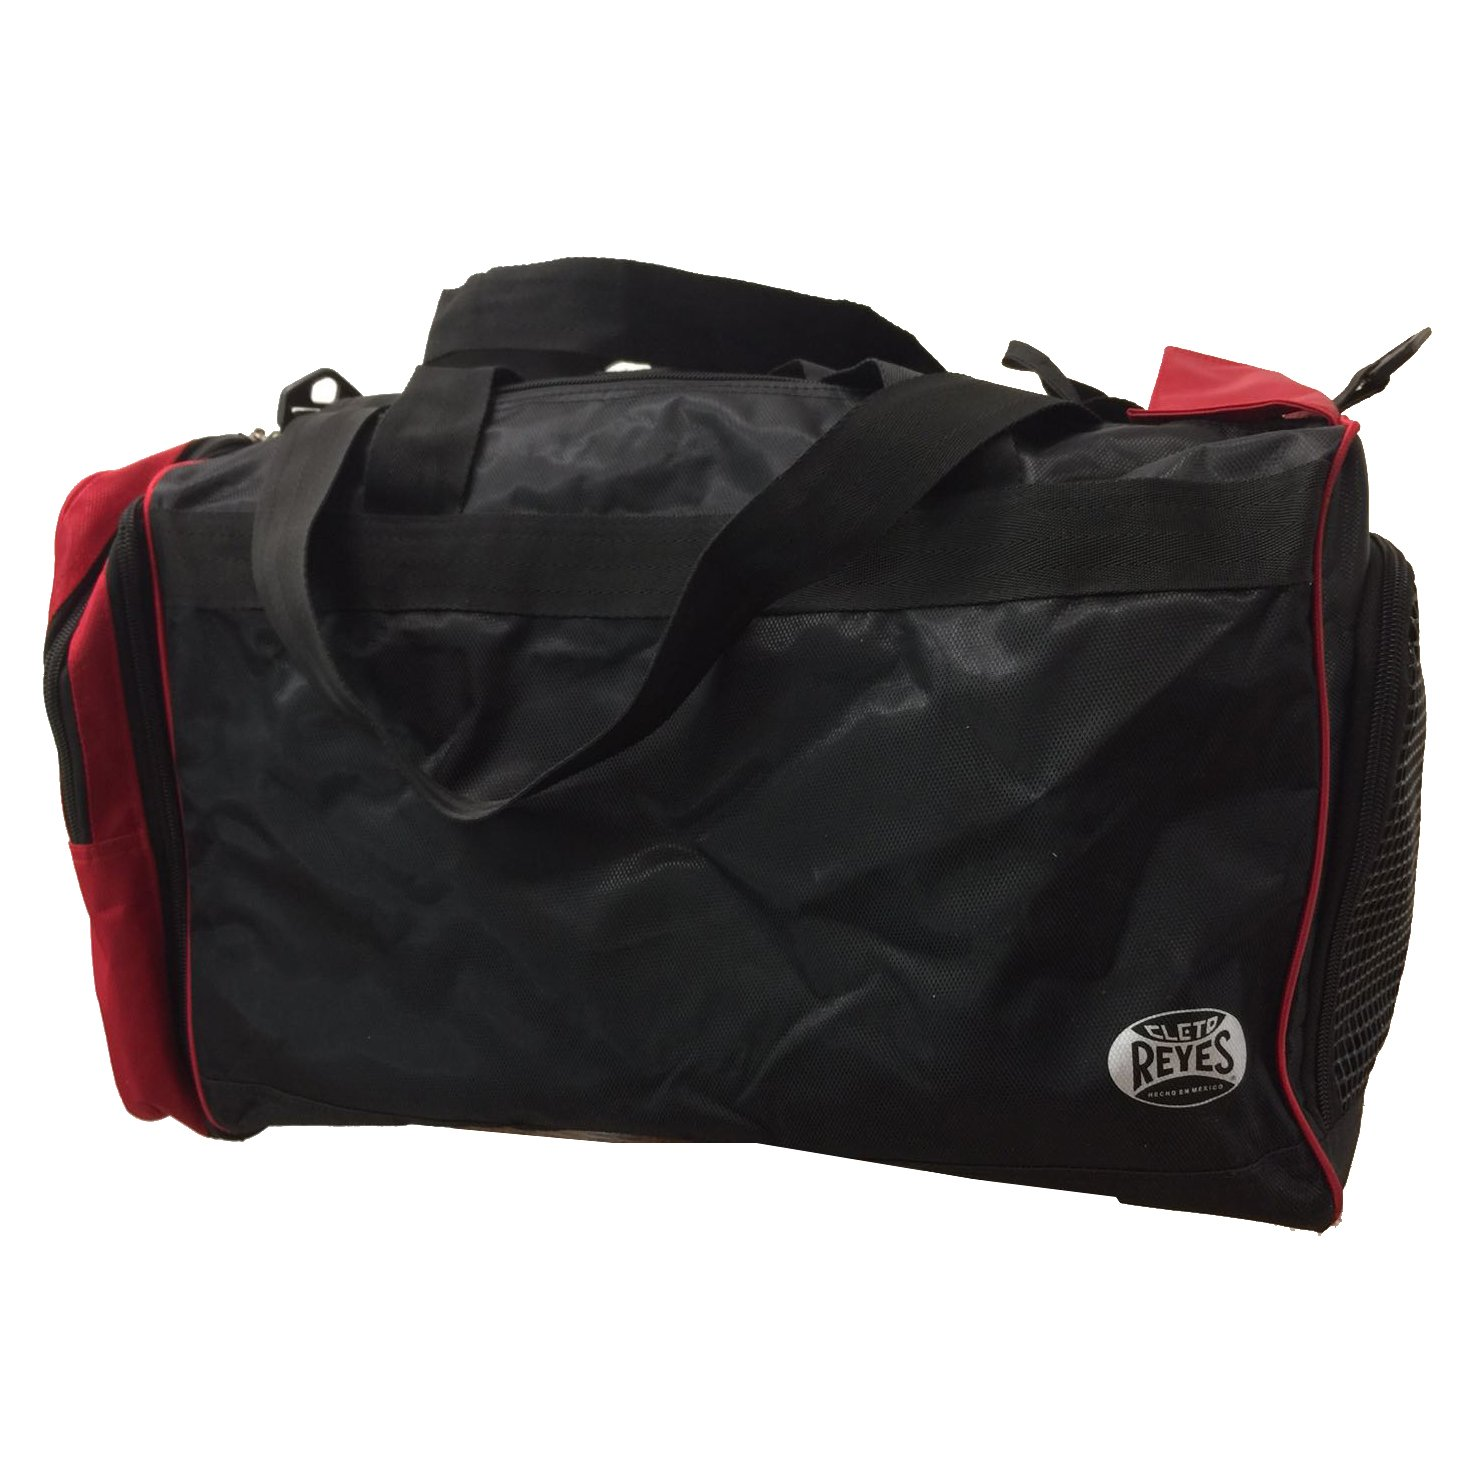 cleto reyes gym bag back